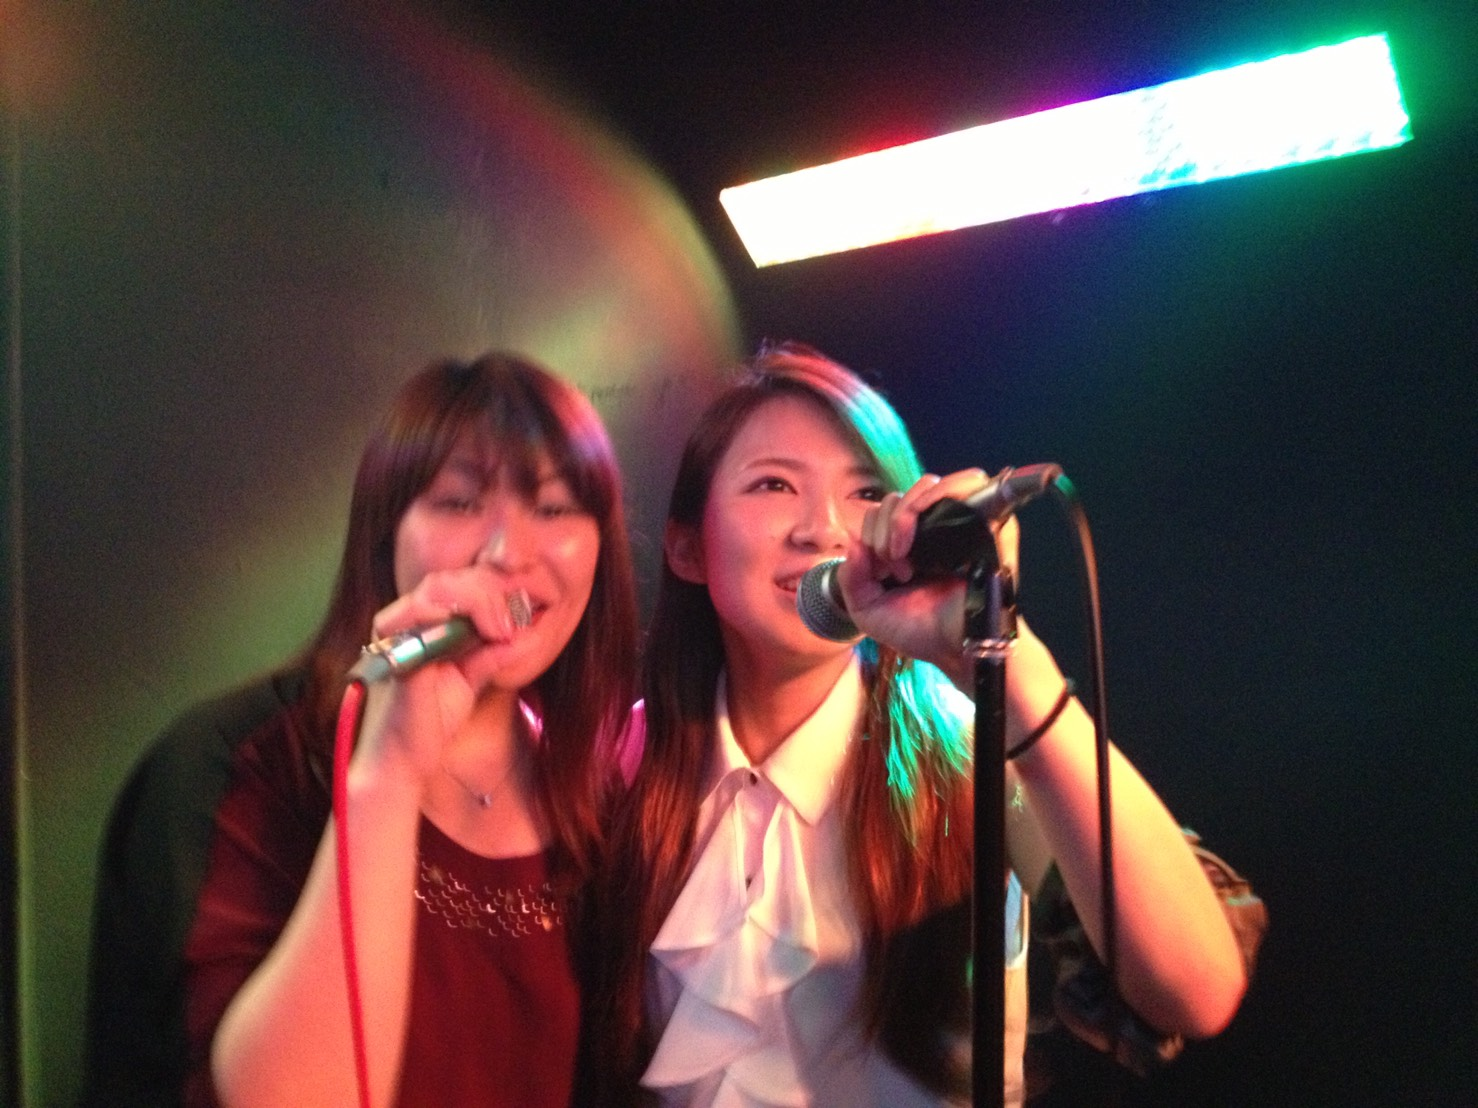 singing at the stage